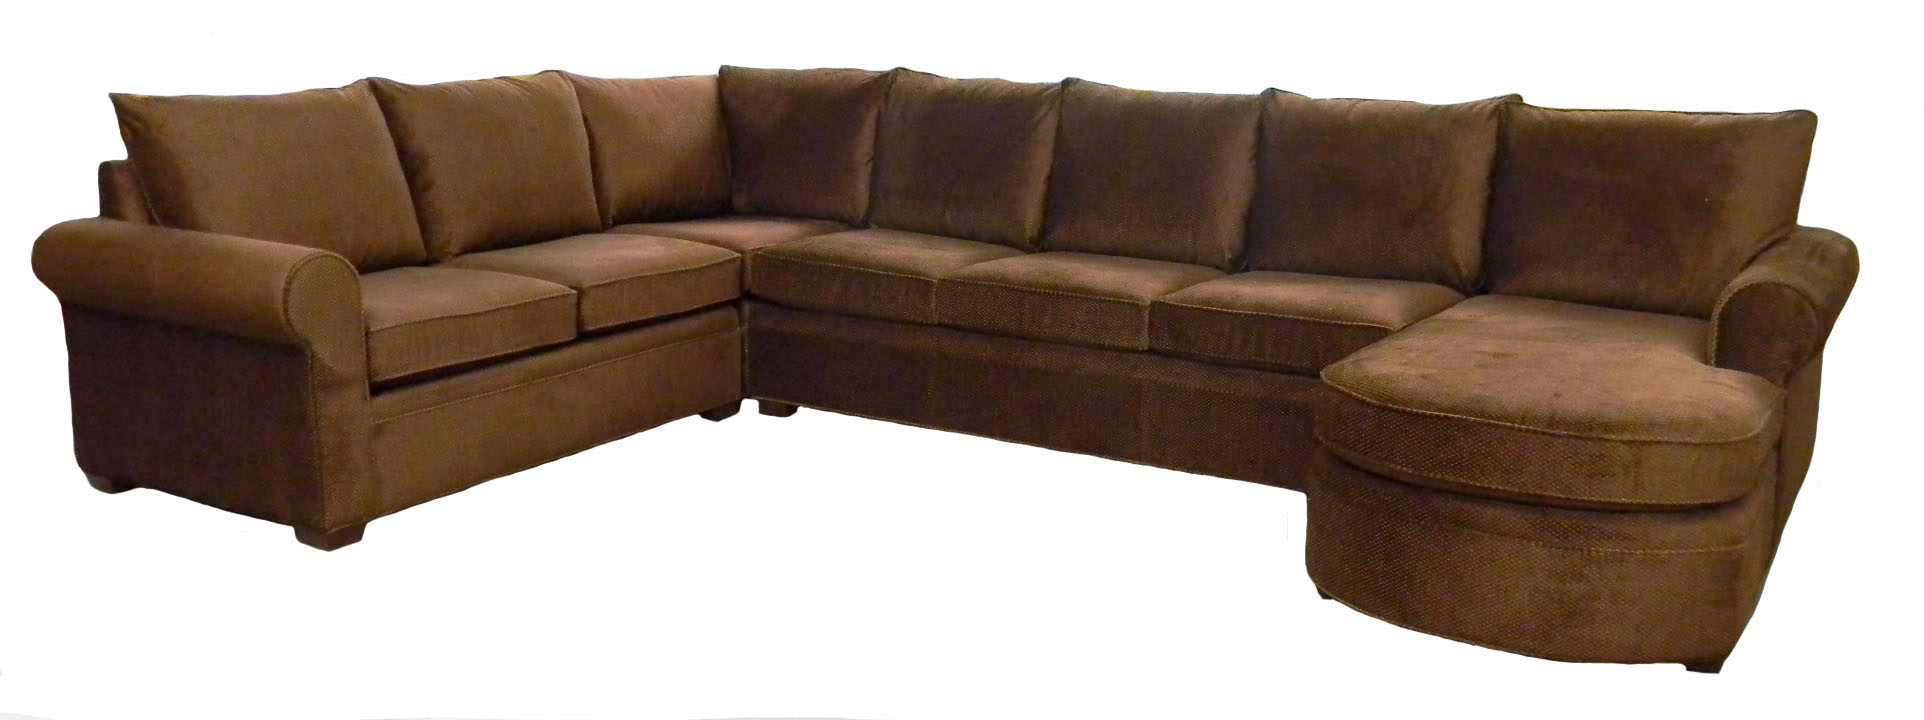 Photos examples custom sectional sofas carolina chair for Sectional furniture